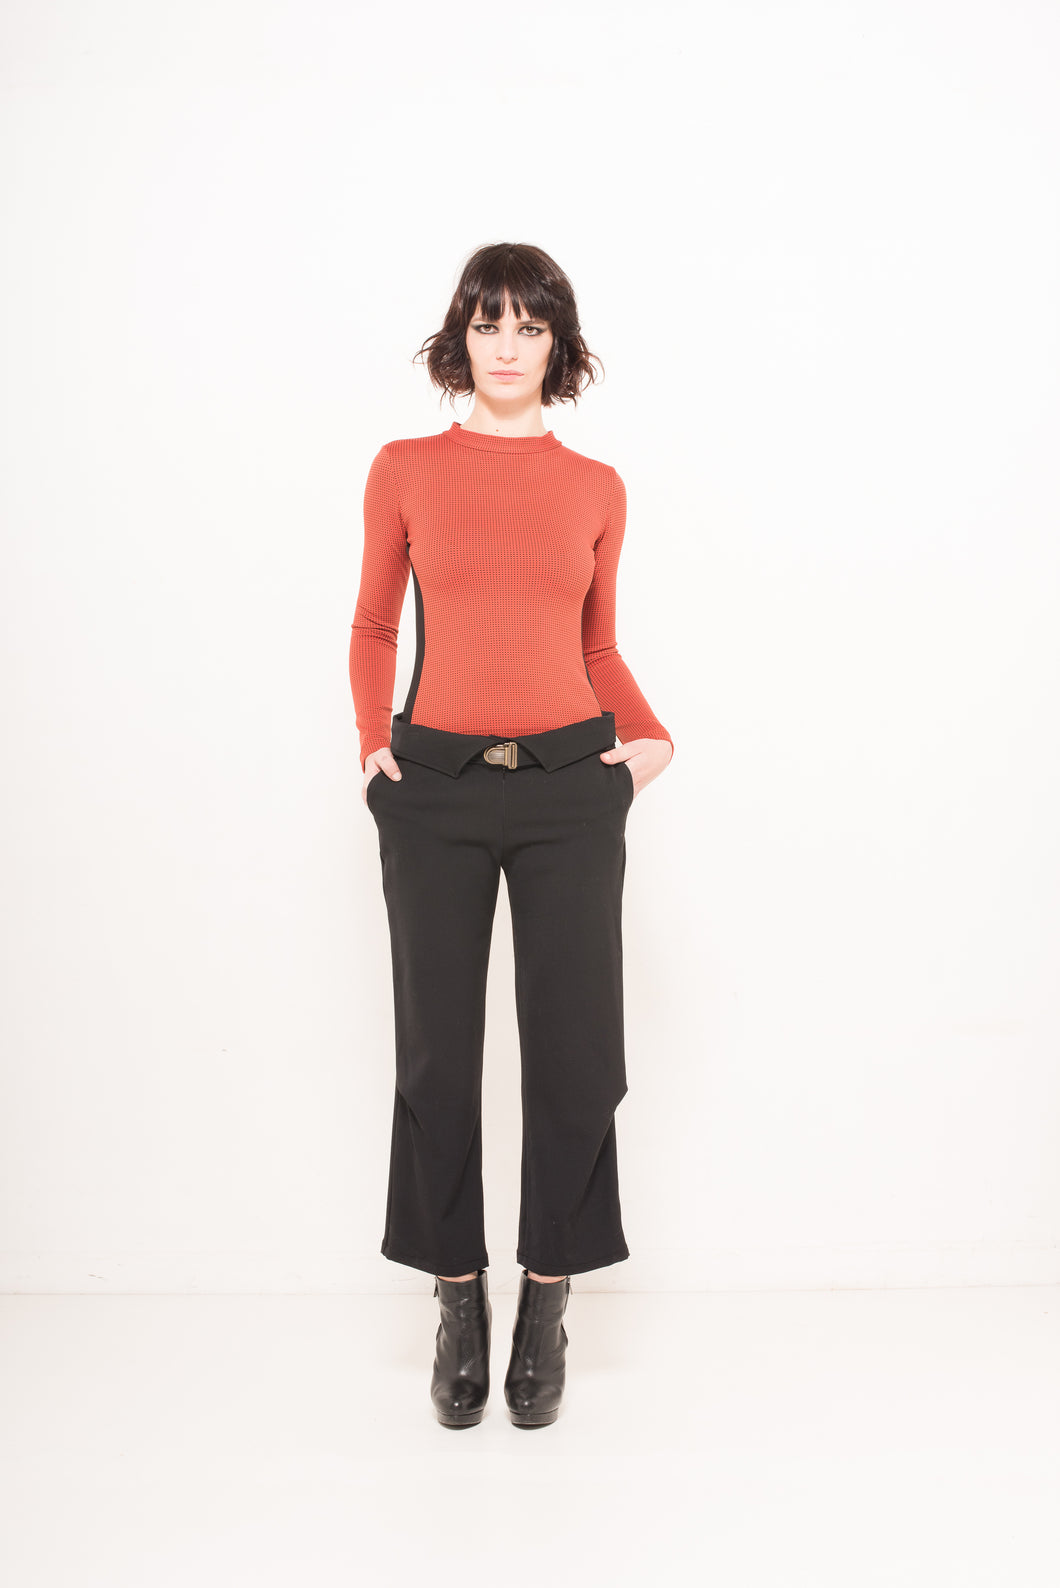 Collar cropped pants - The Funding Ninjas